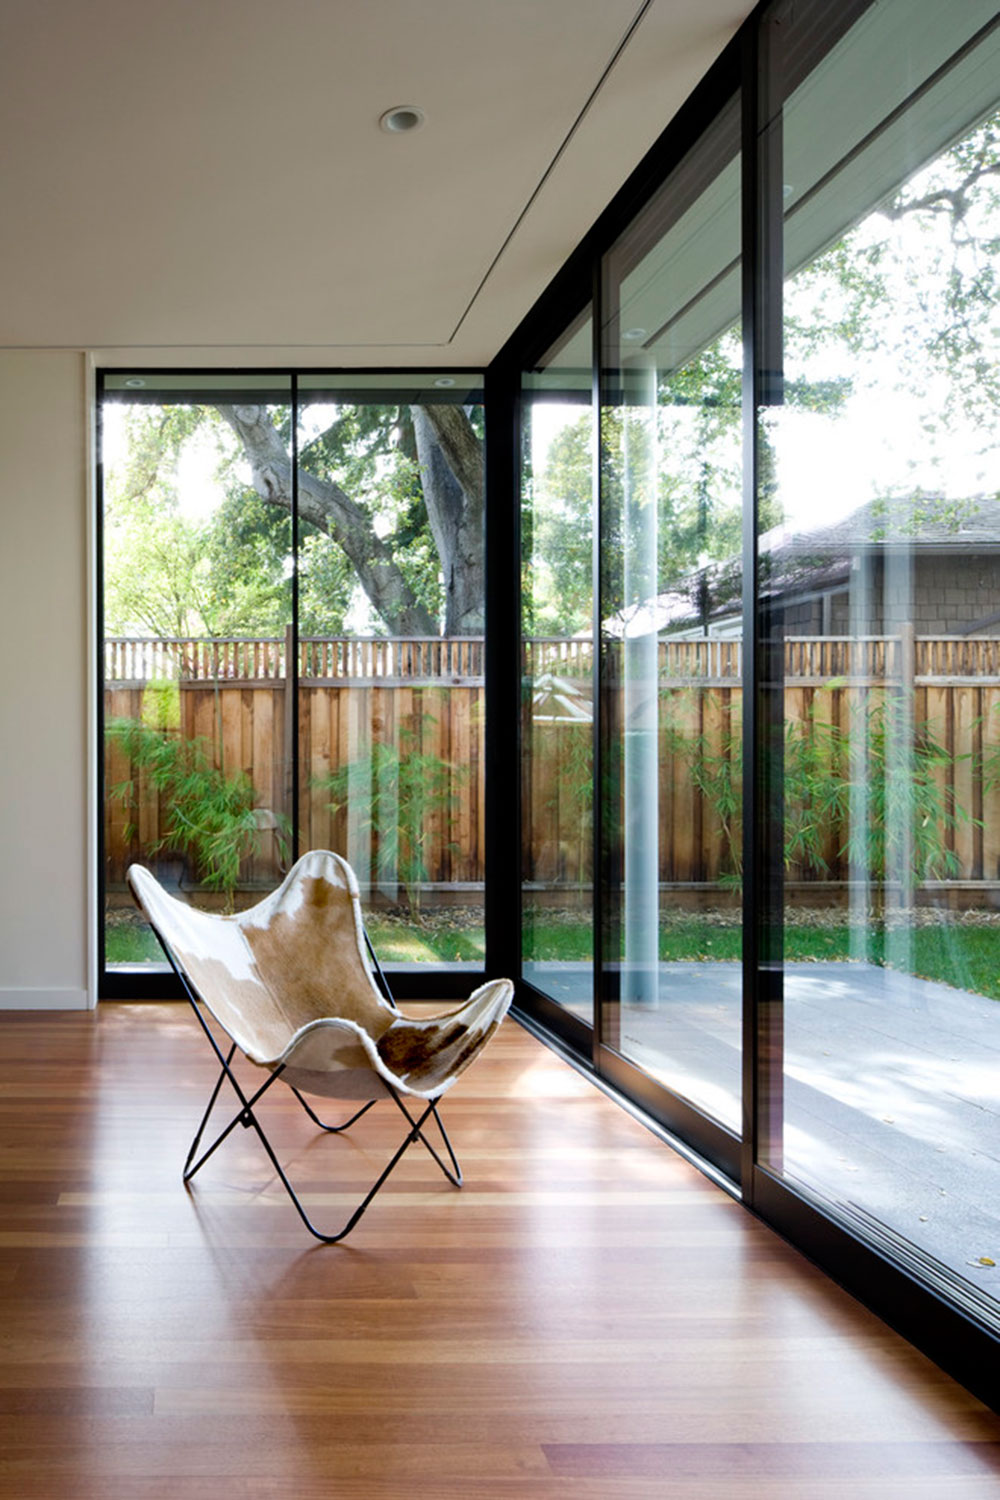 AdditionRemodel-of-the-historic-house-in-Palo-Alto-von-Cathy-Schwabe-Architektur Tips for using the butterfly chair to decorate a room